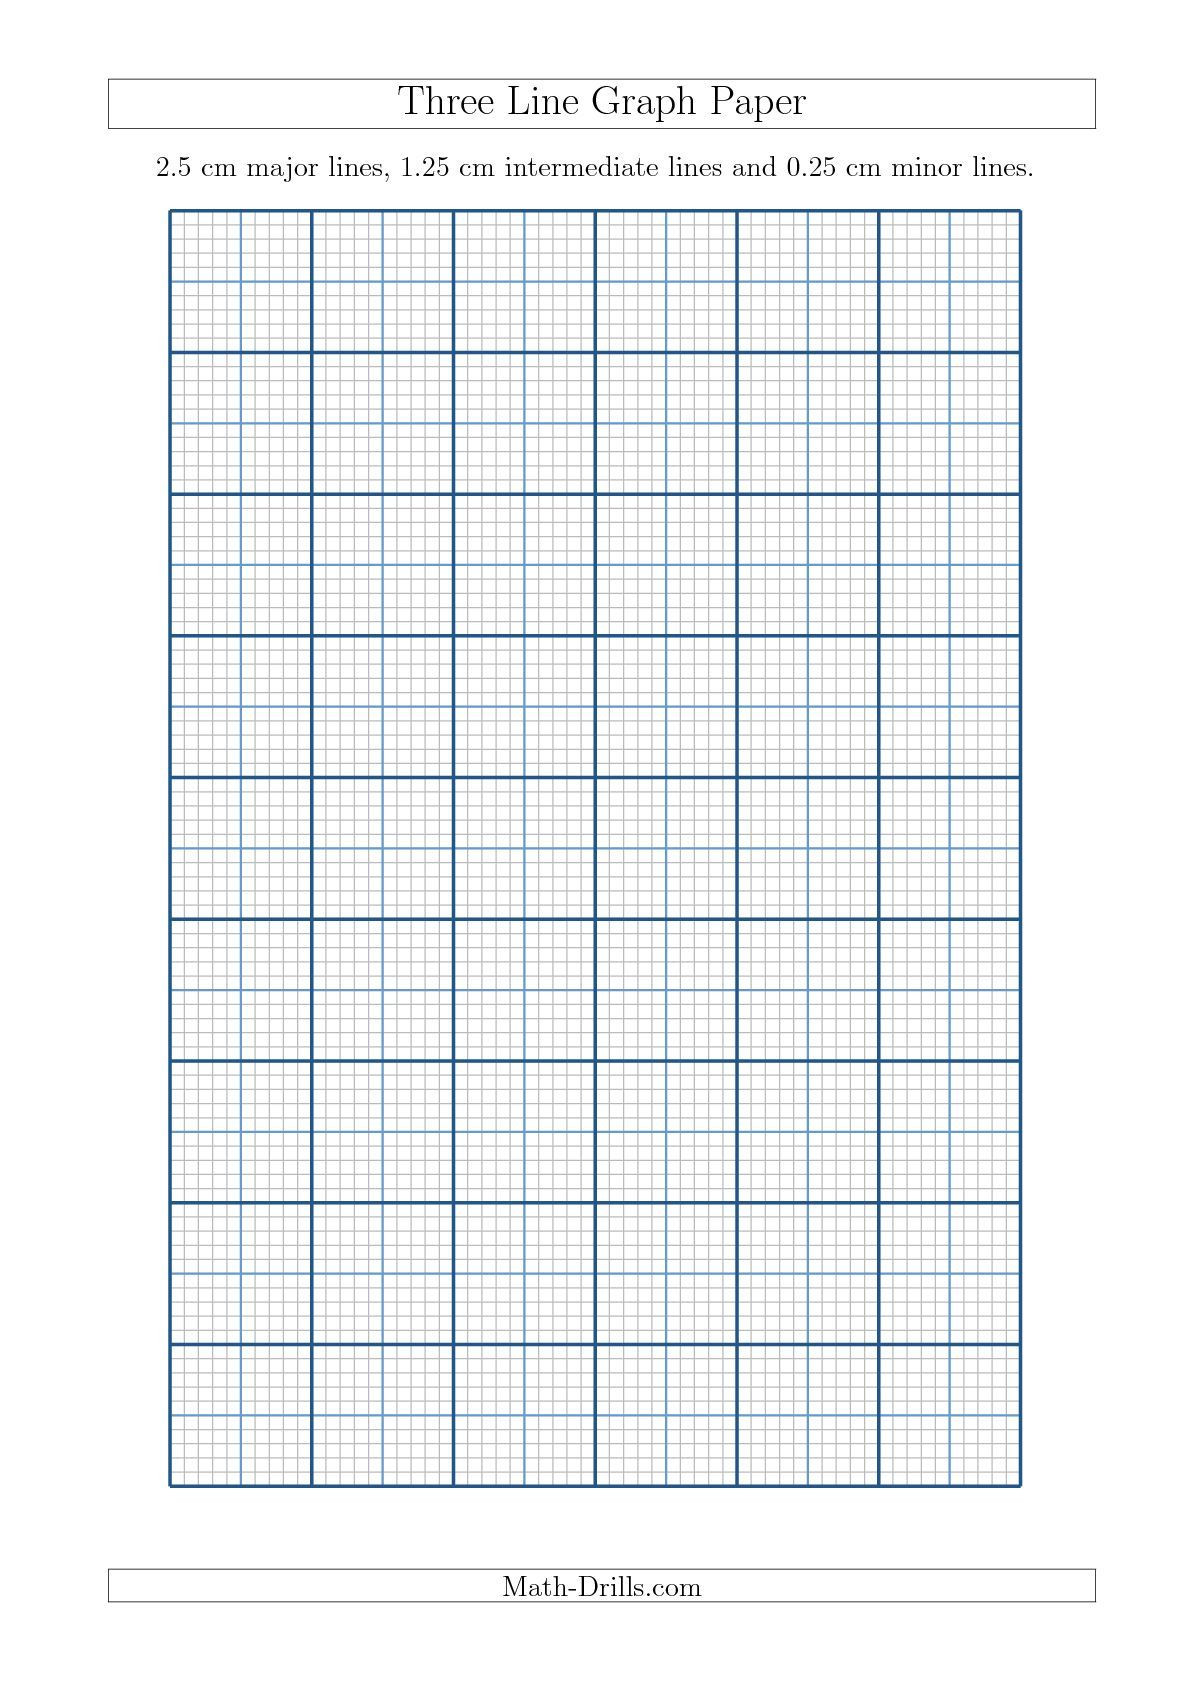 Math Drills Graph Paper Three Line Graph Paper with 2 5 Cm Major Lines 1 25 Cm